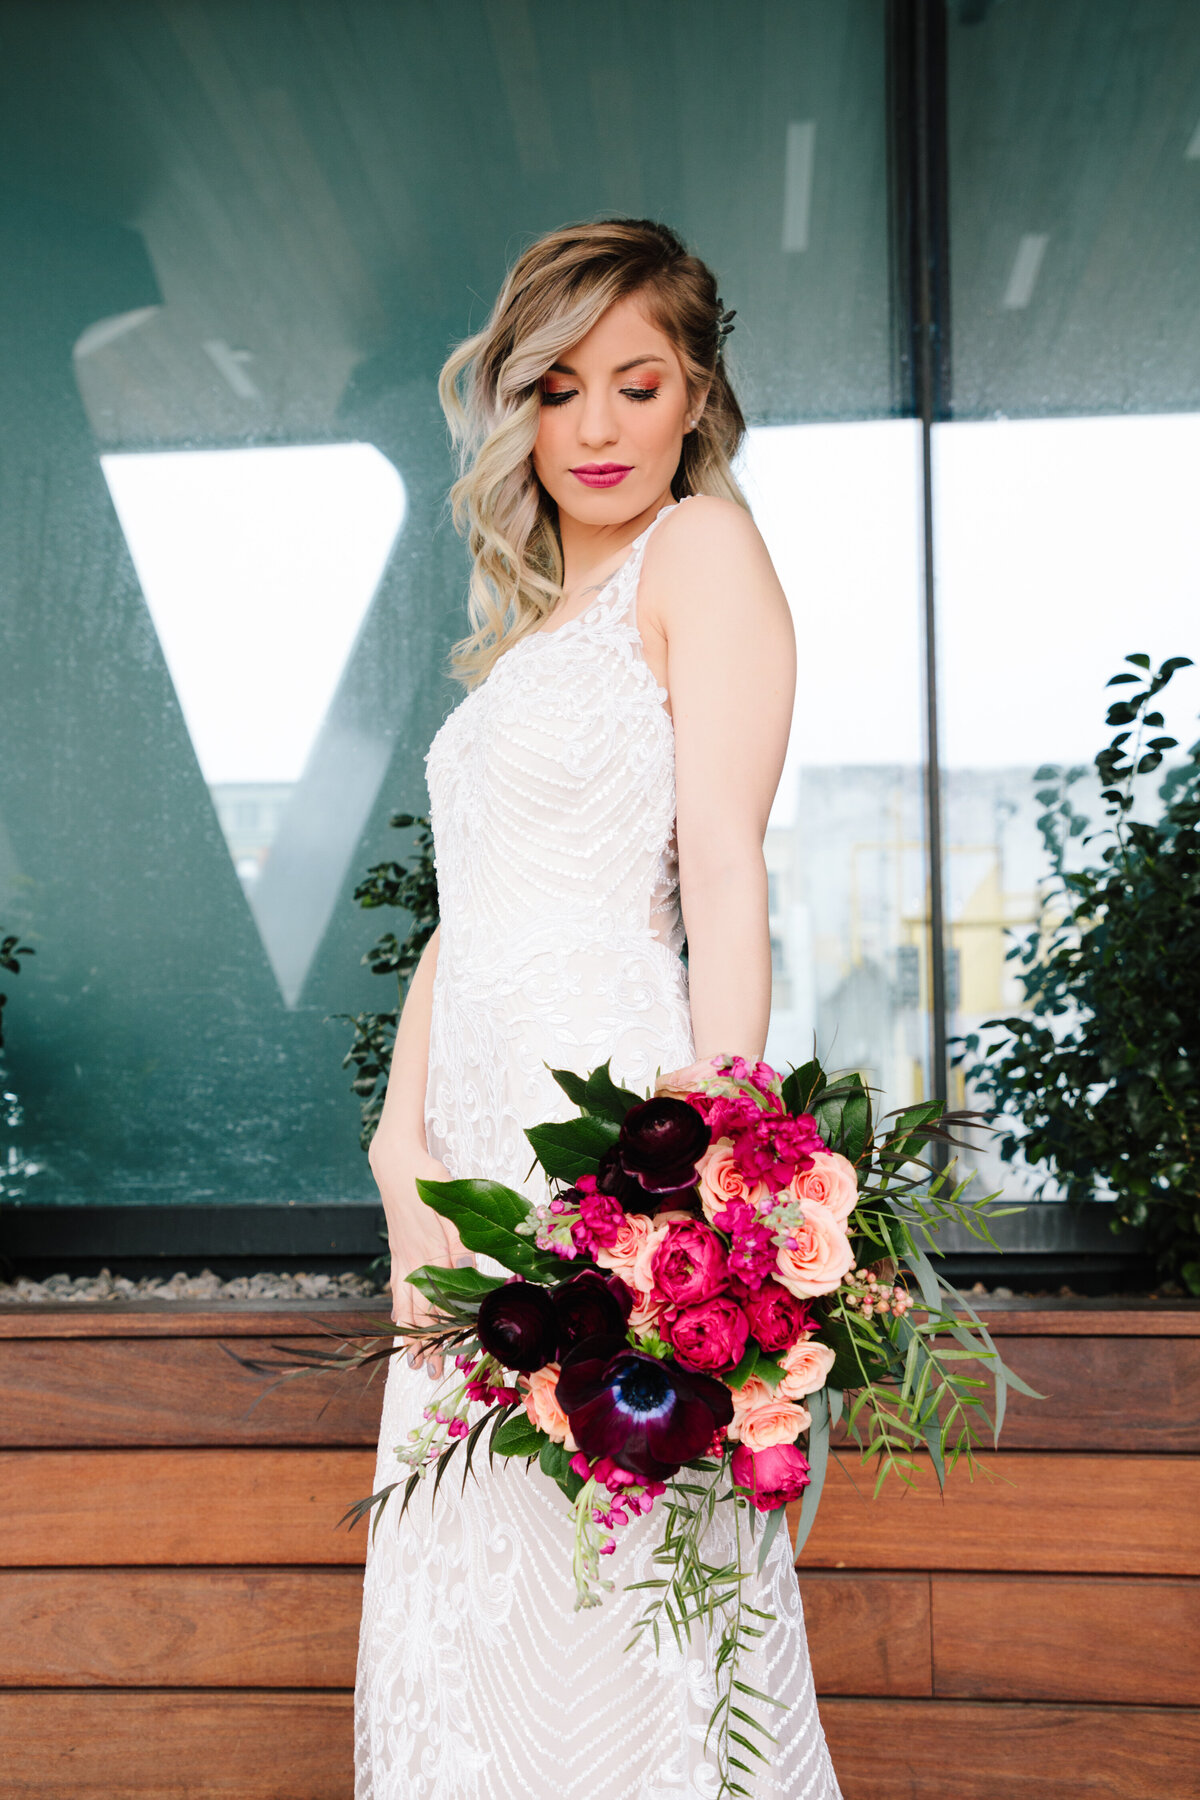 Kansas-City-Wedding-Photographer-Natalie-Nichole-Photography-018